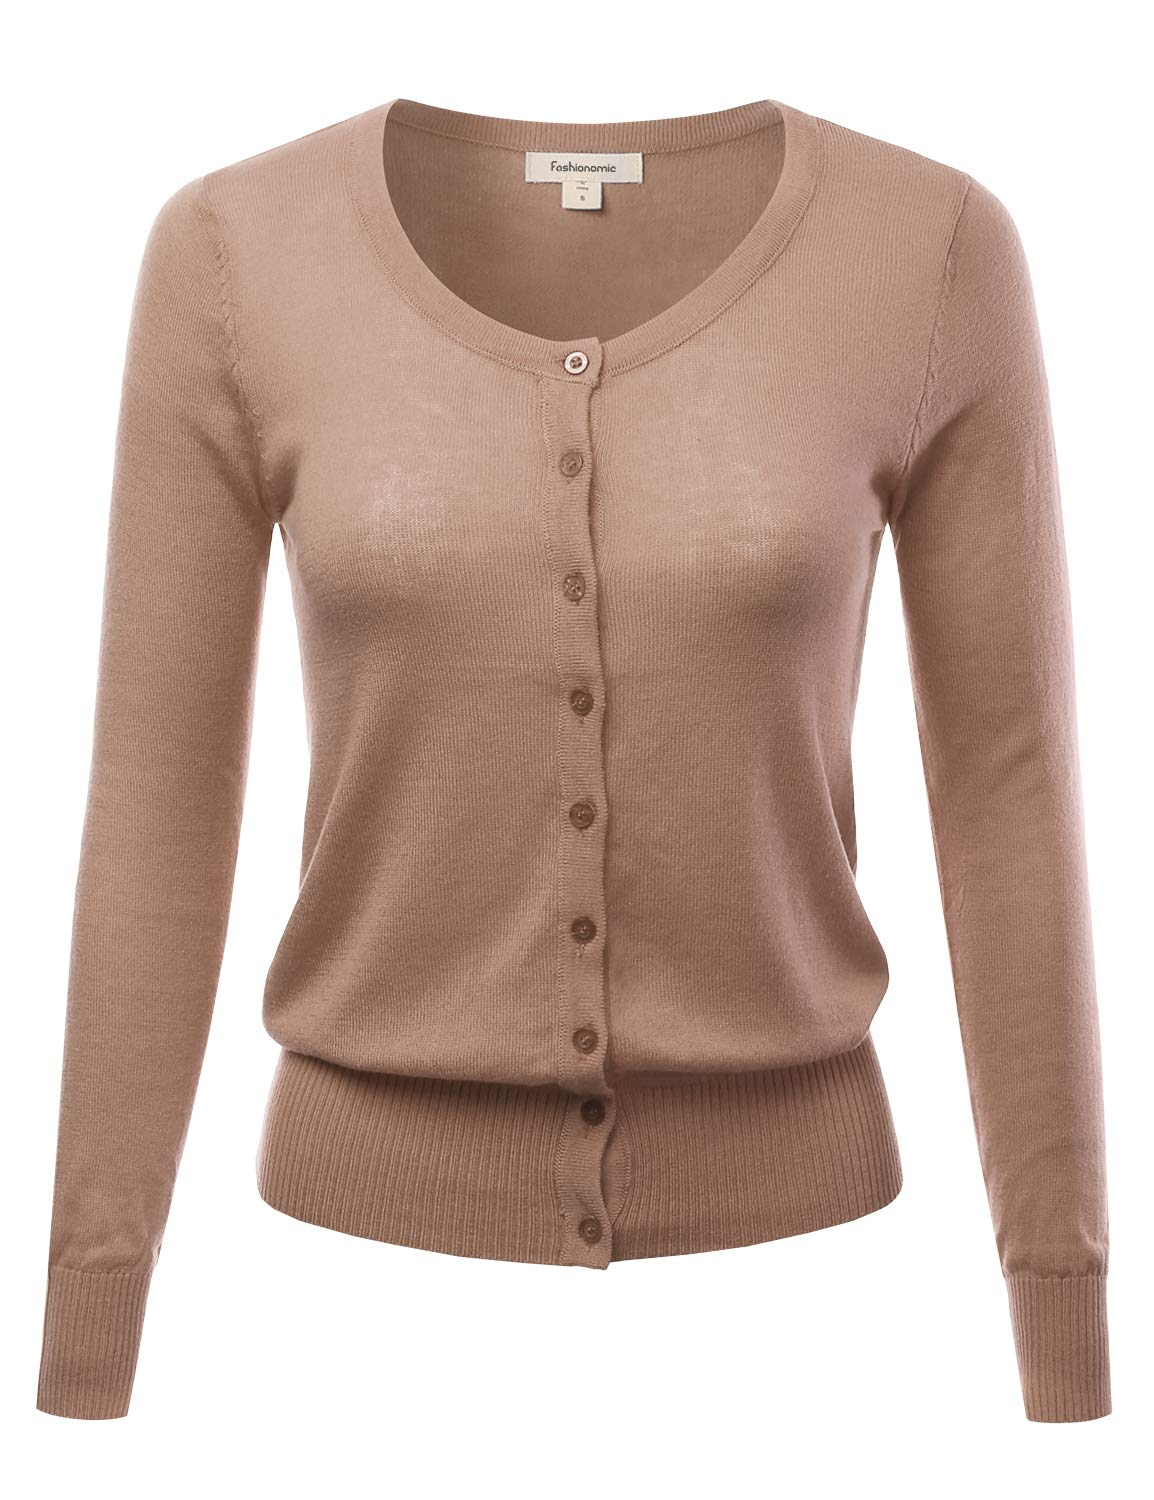 FASHIONOMIC Women's Button Down Crew Neck Light Weight Long Sleeve Knit Cardigan Sweater (S-70X) (CLLC001) Mocha 2X